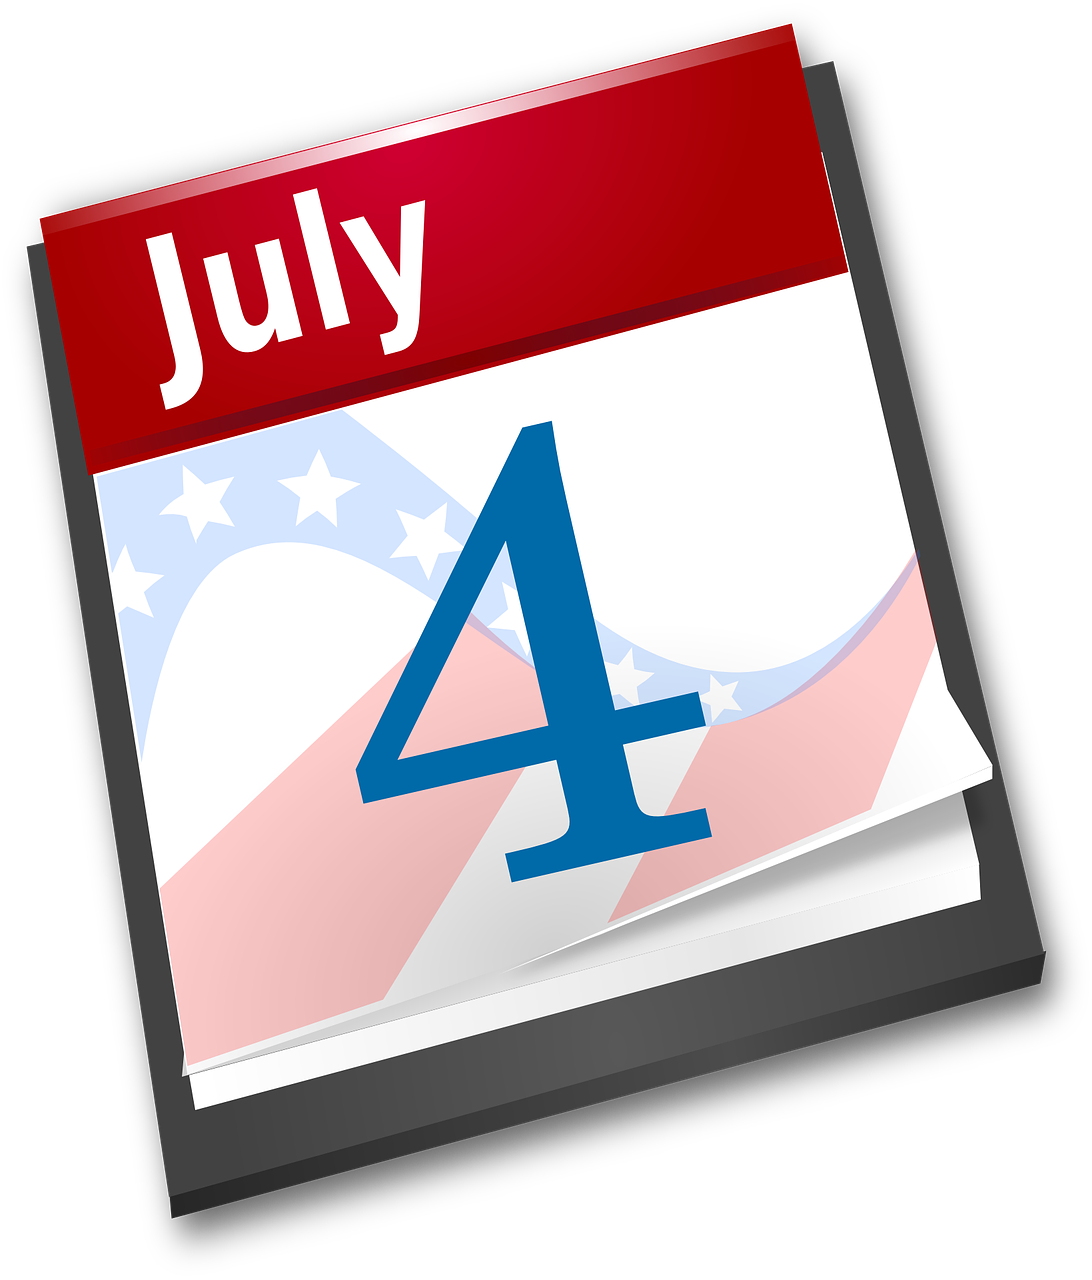 Clipart calendar memorial day. Vacation independence usa america